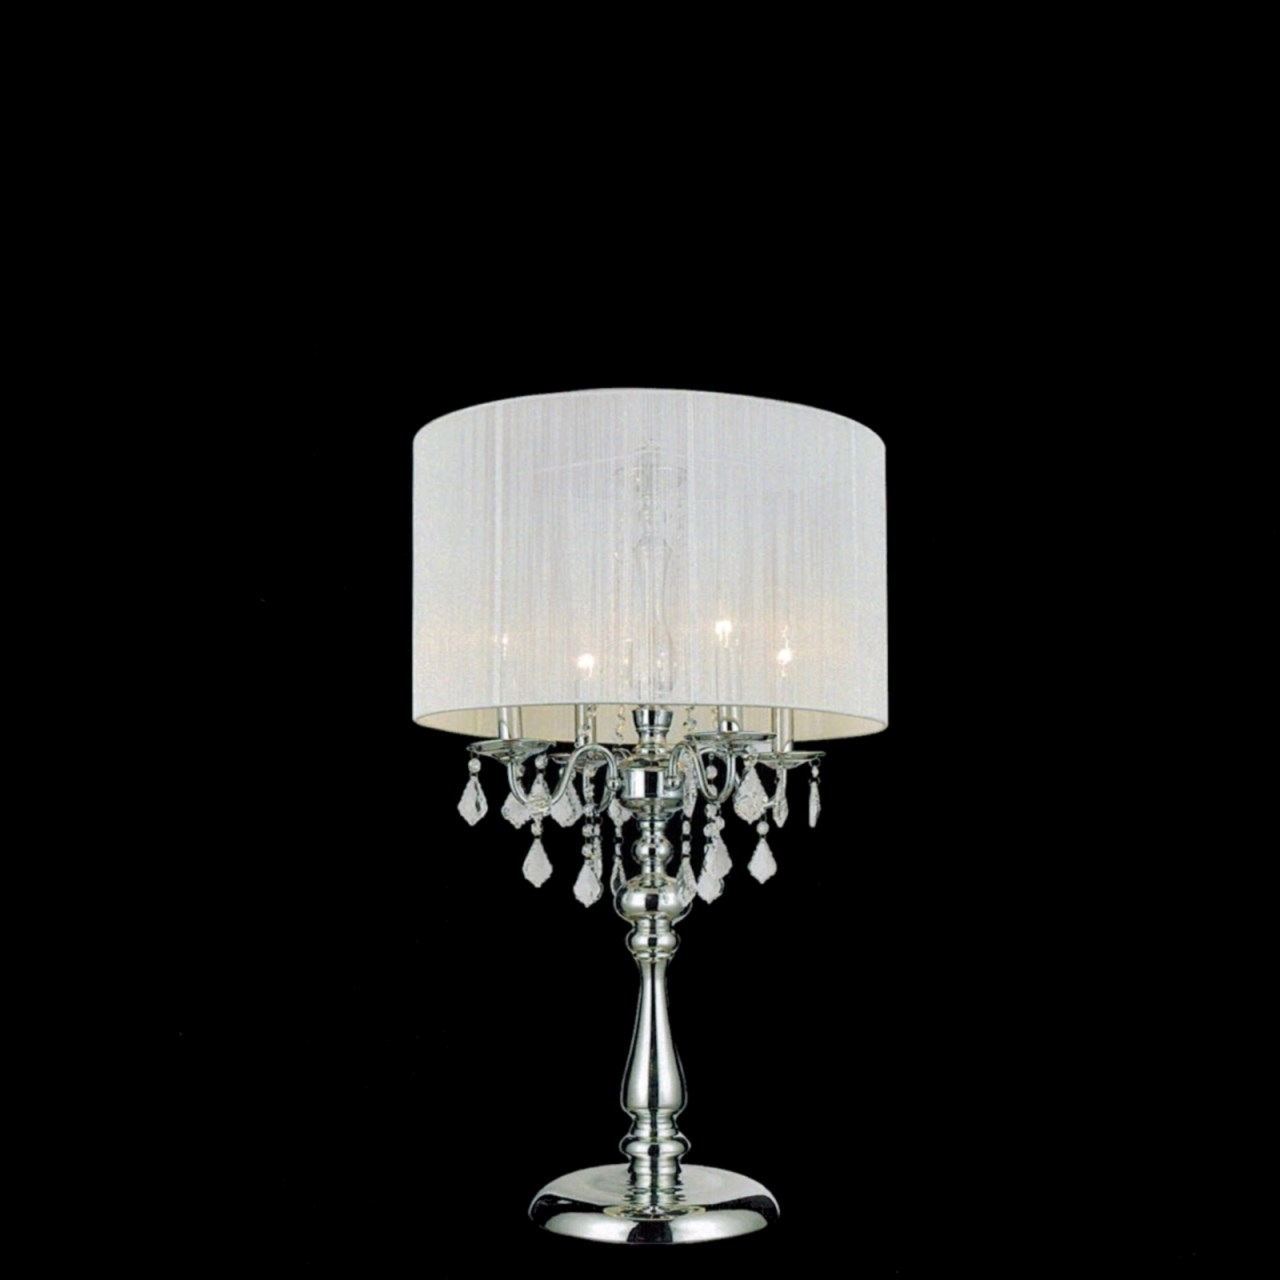 Chandelier Lampshades Inside Most Up To Date Chandelier Lamp Shades With Crystals : Furniture Decor Trend – Best (View 5 of 20)